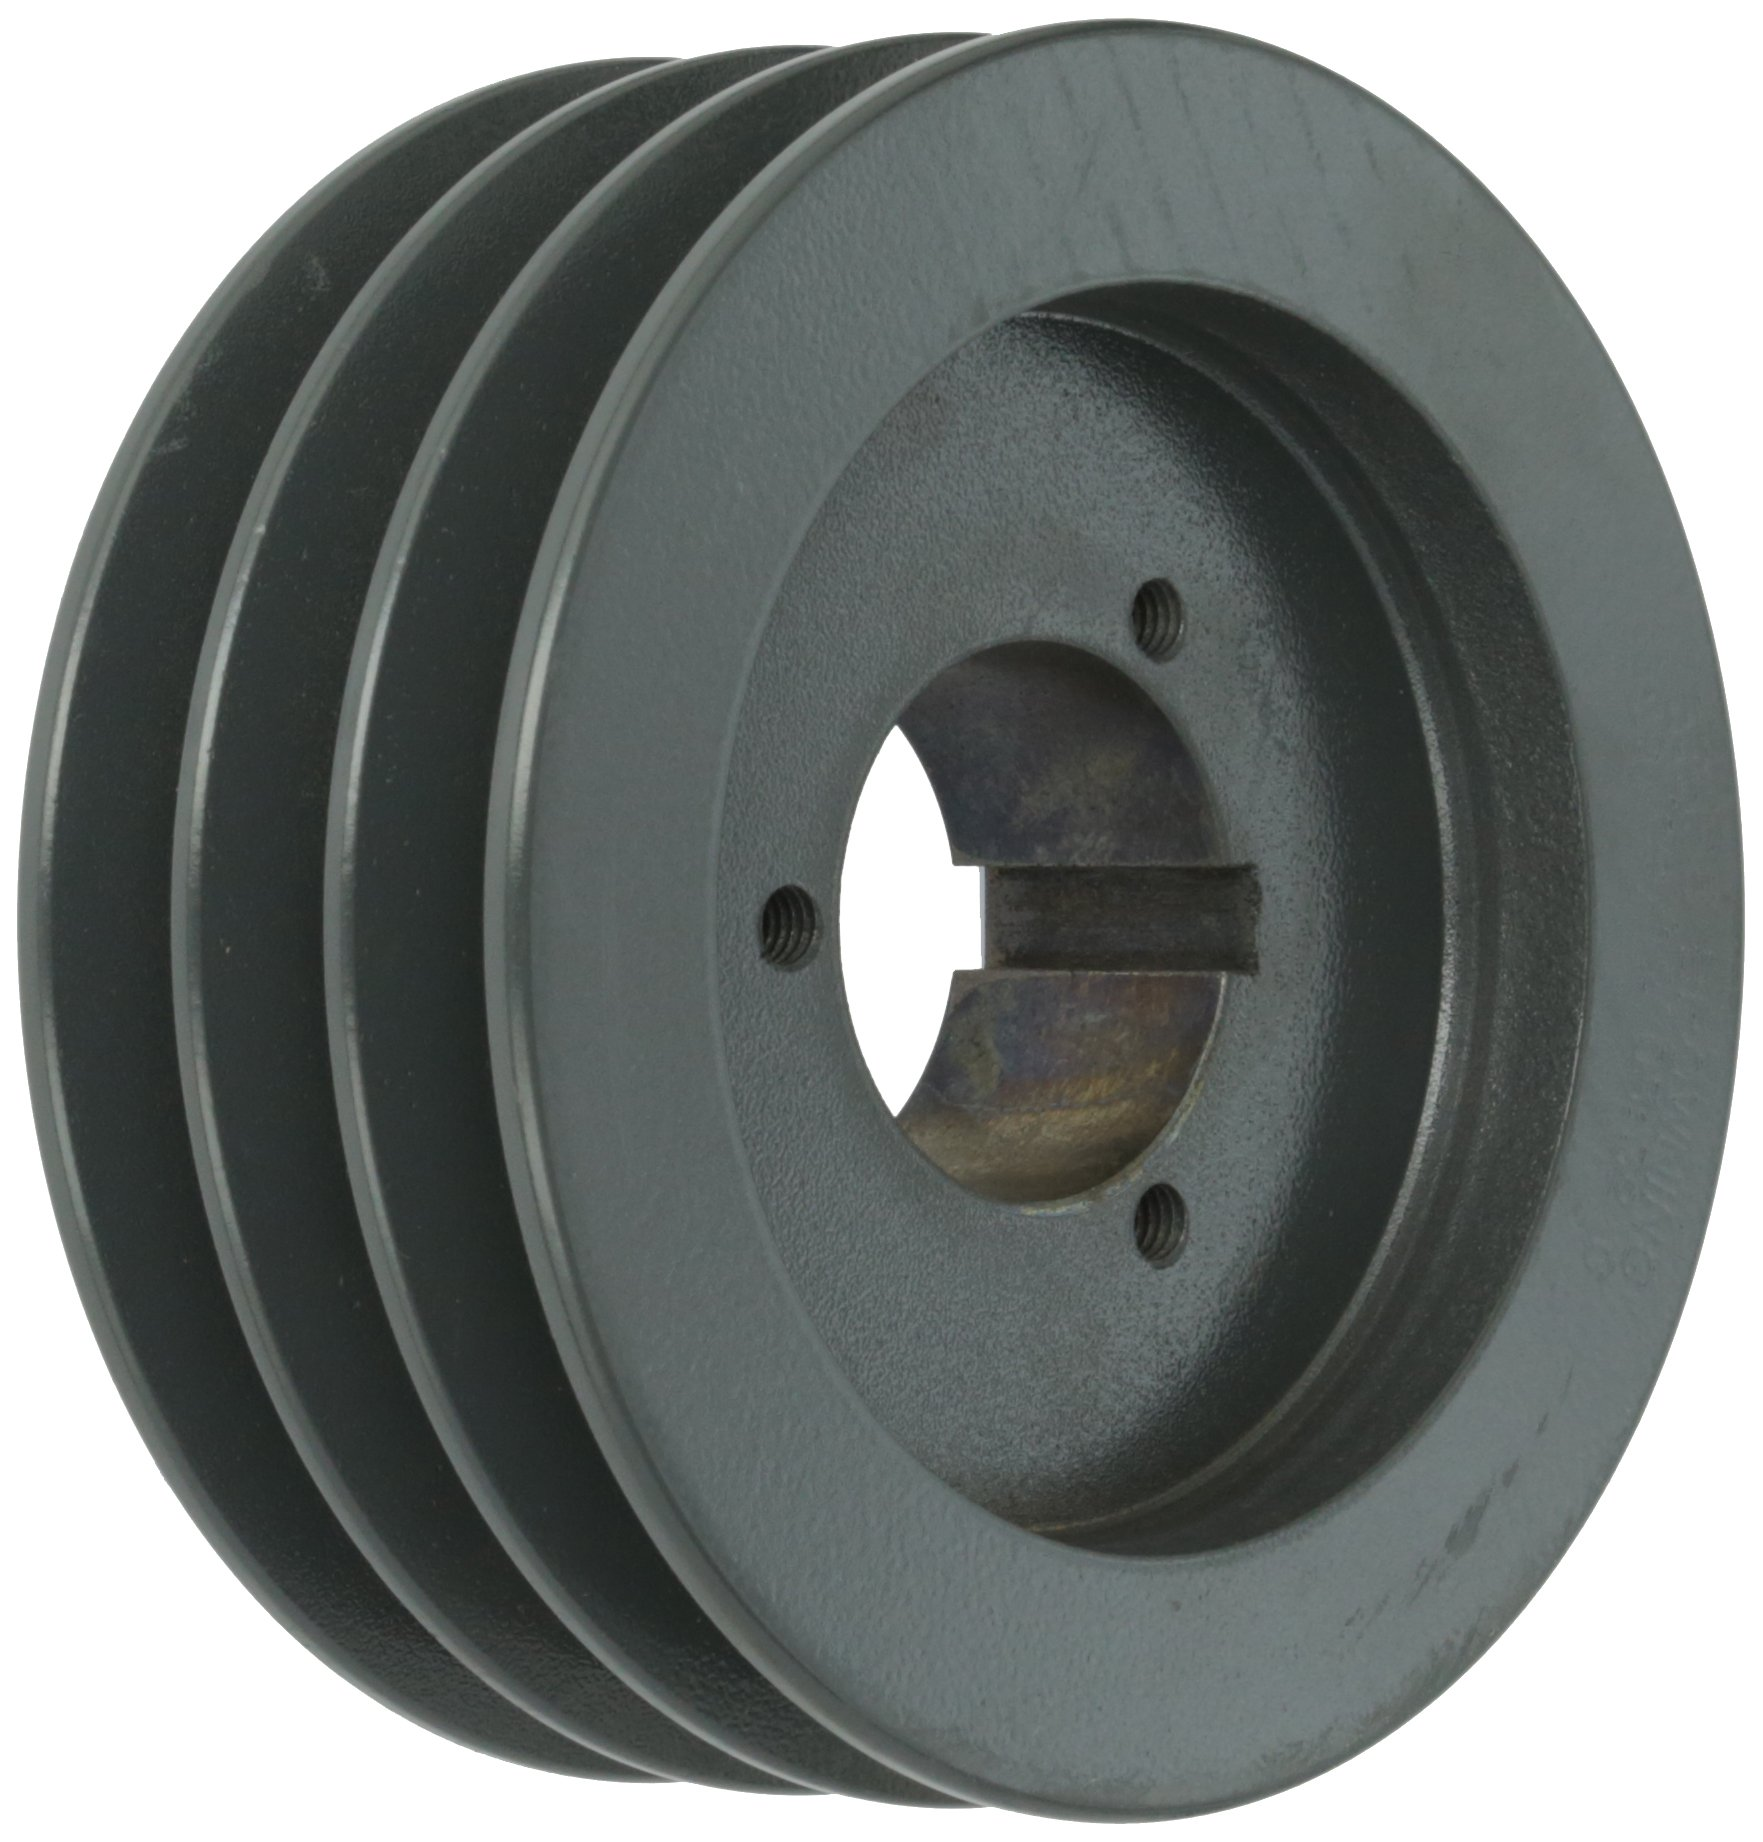 Browning 3TB58 Split Taper Sheave, Cast Iron, 3 Groove, A or B Belt, Uses P1 Bushing